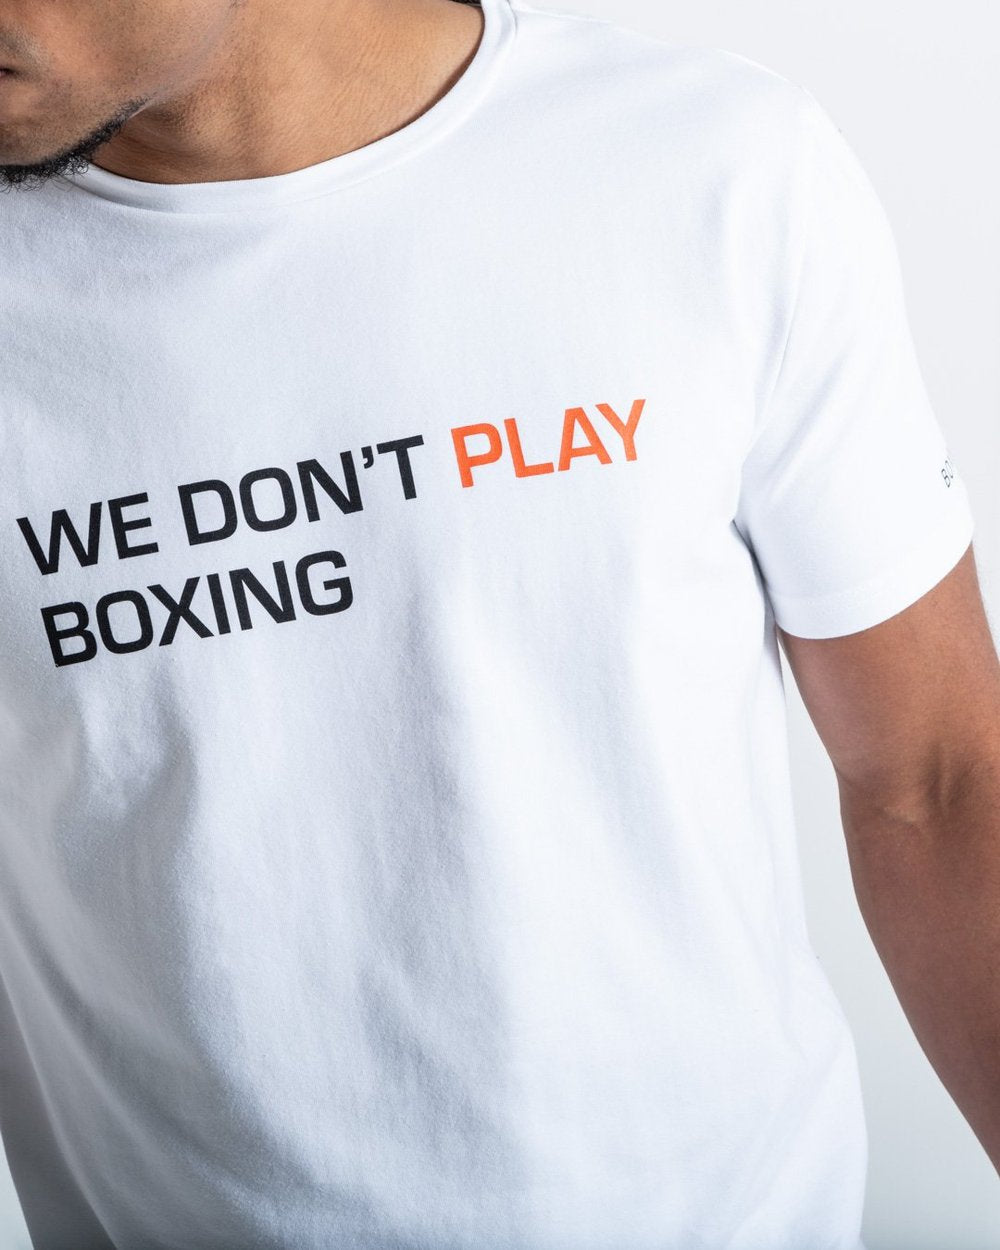 WE DON'T PLAY BOXING T-SHIRT - WHITE - Pandemic Fight Gear Inc.